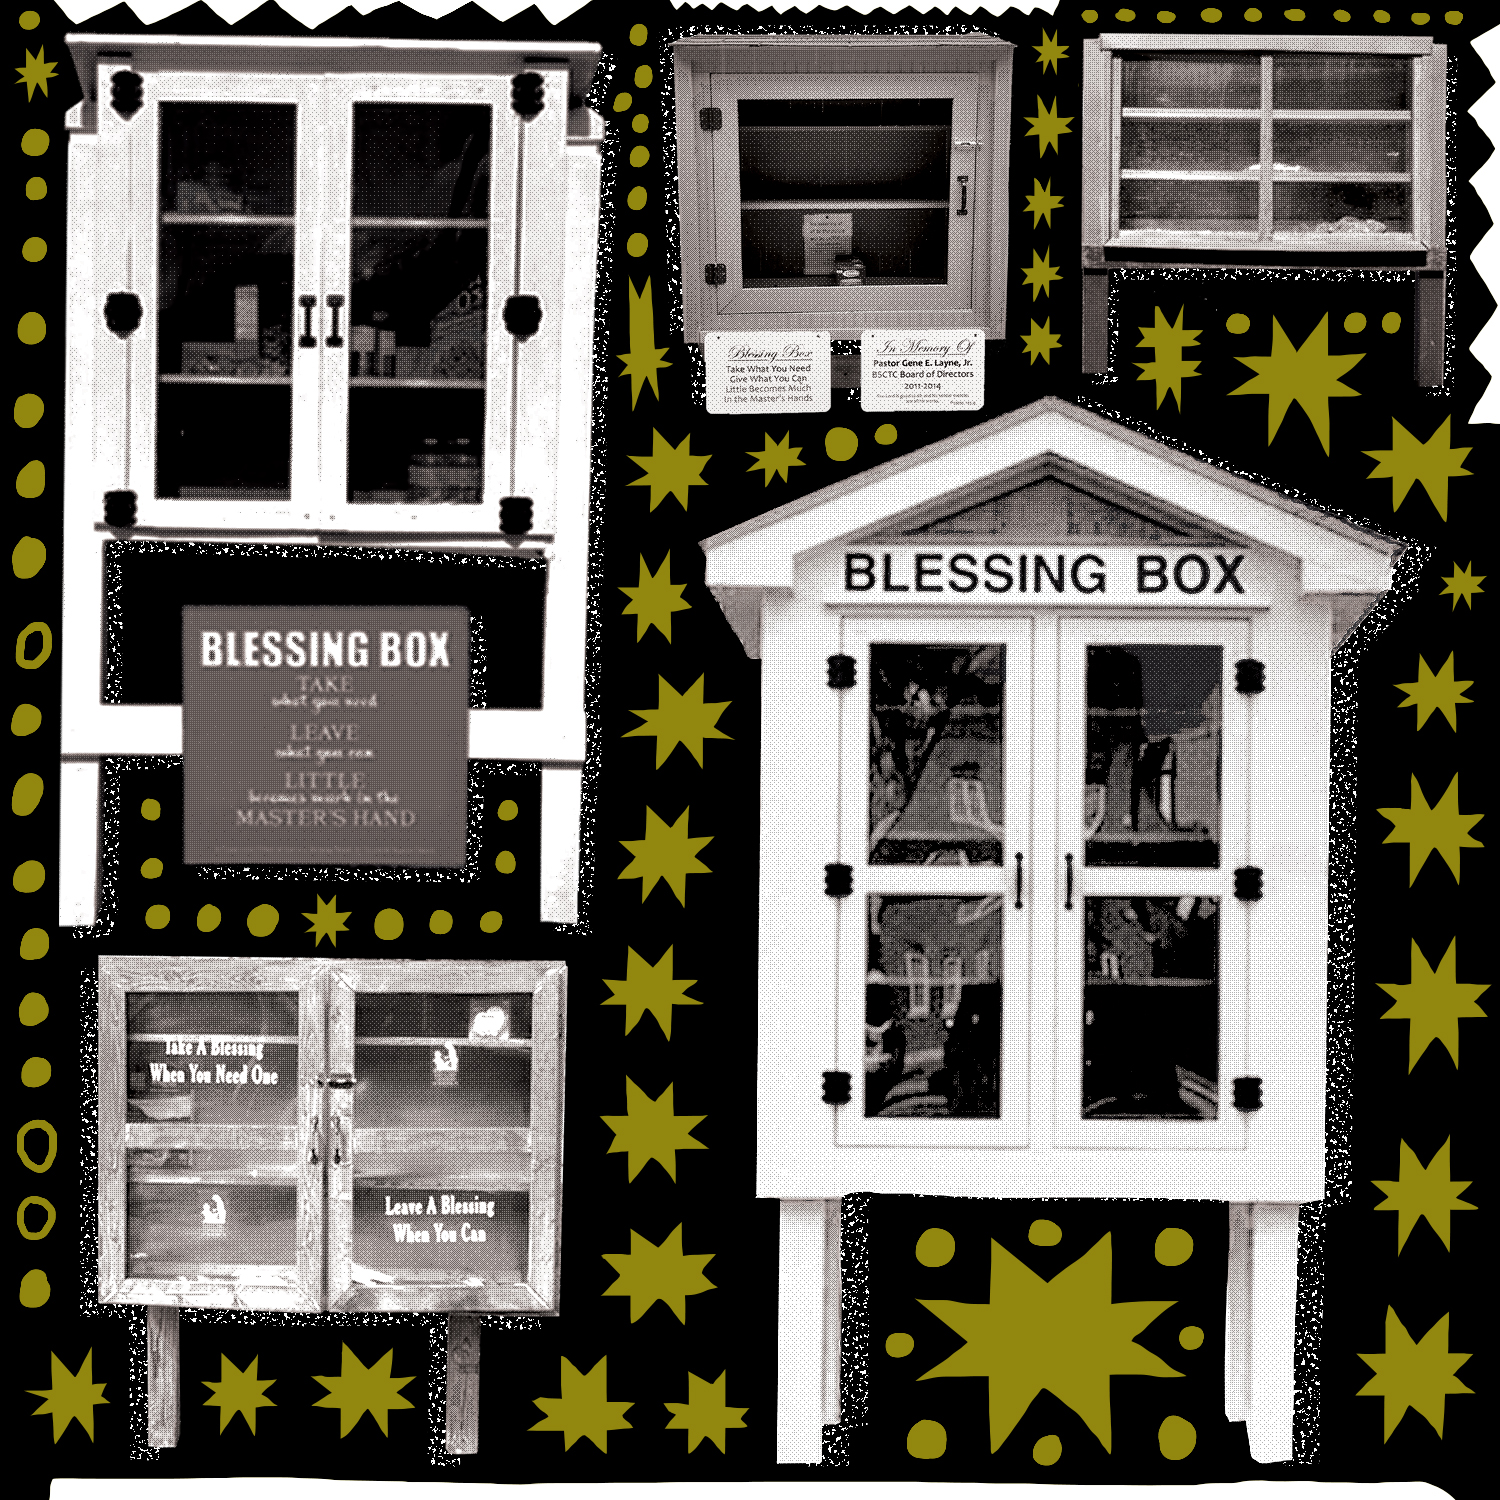 blessing-boxes-TASTE-y1